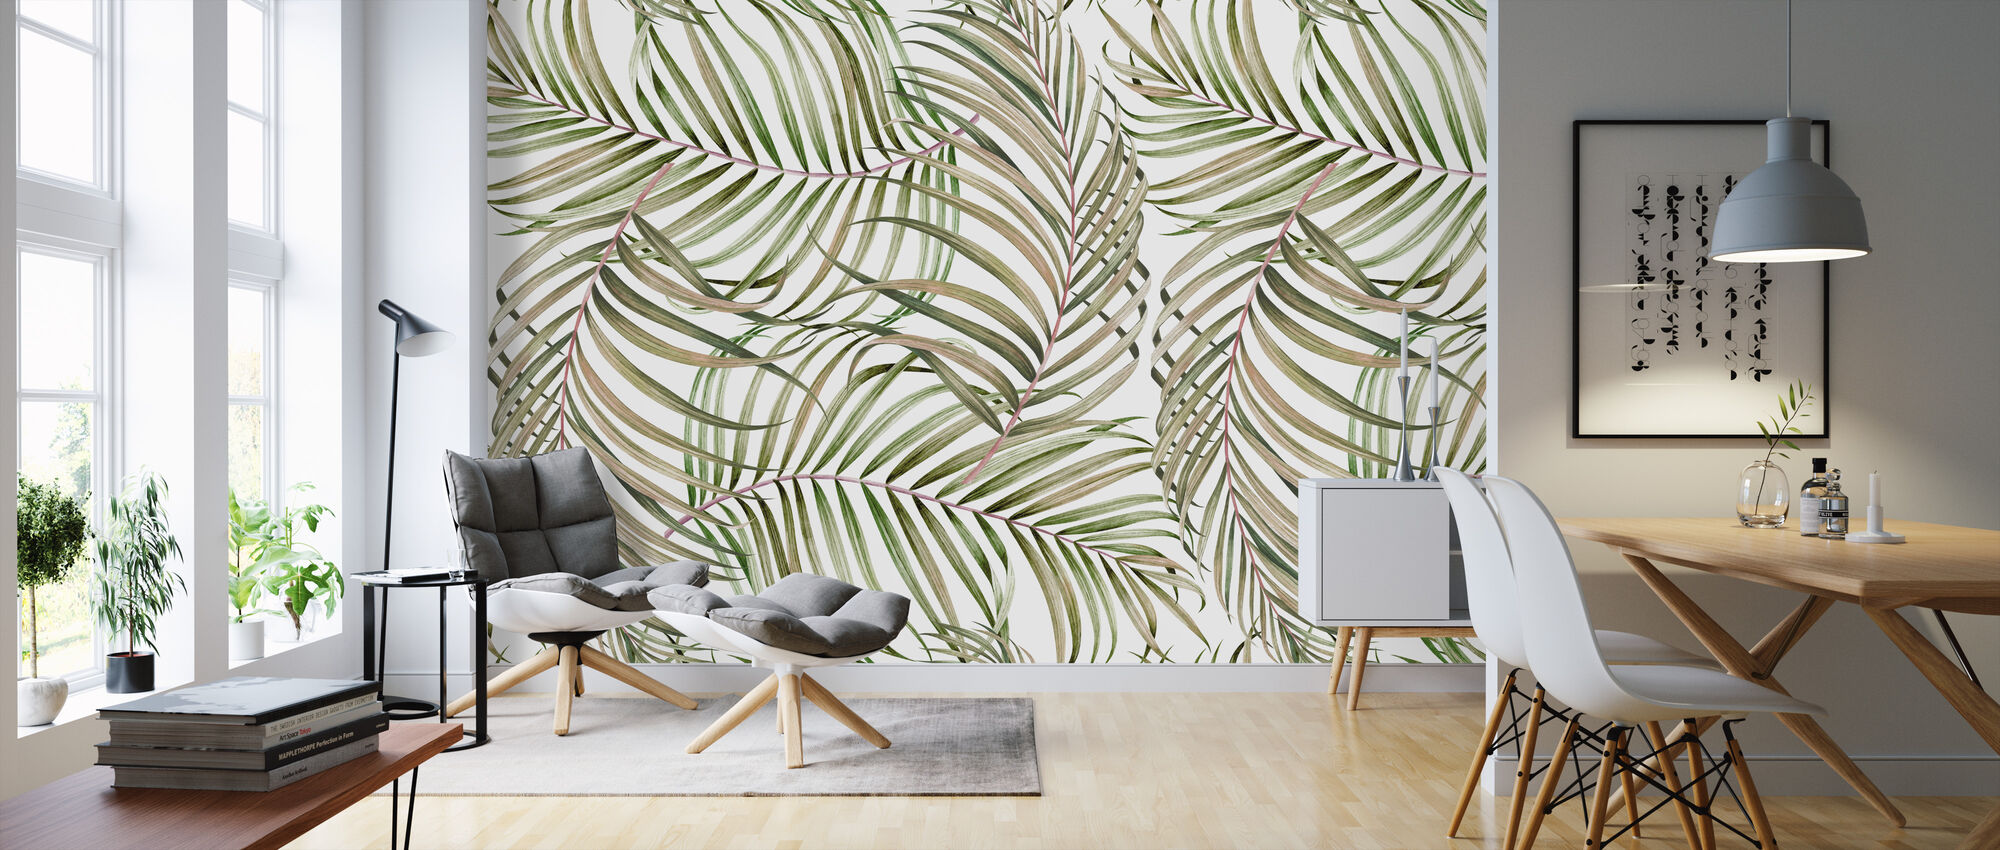 Palm Branches - Wallpaper - Living Room